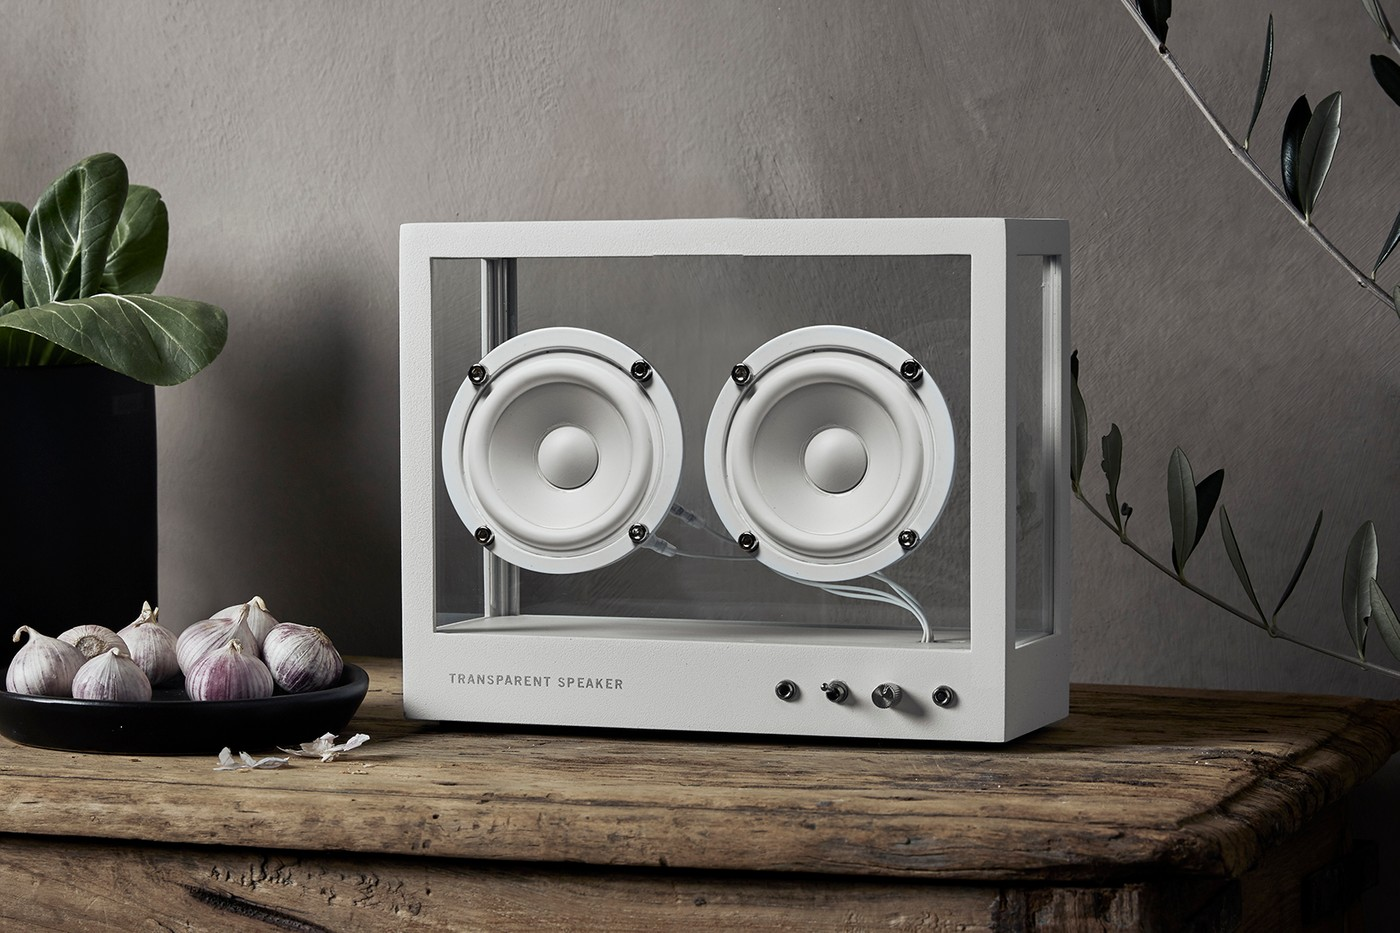 transparent sound speakers glass see through scandinavian interiors homeware tech audio